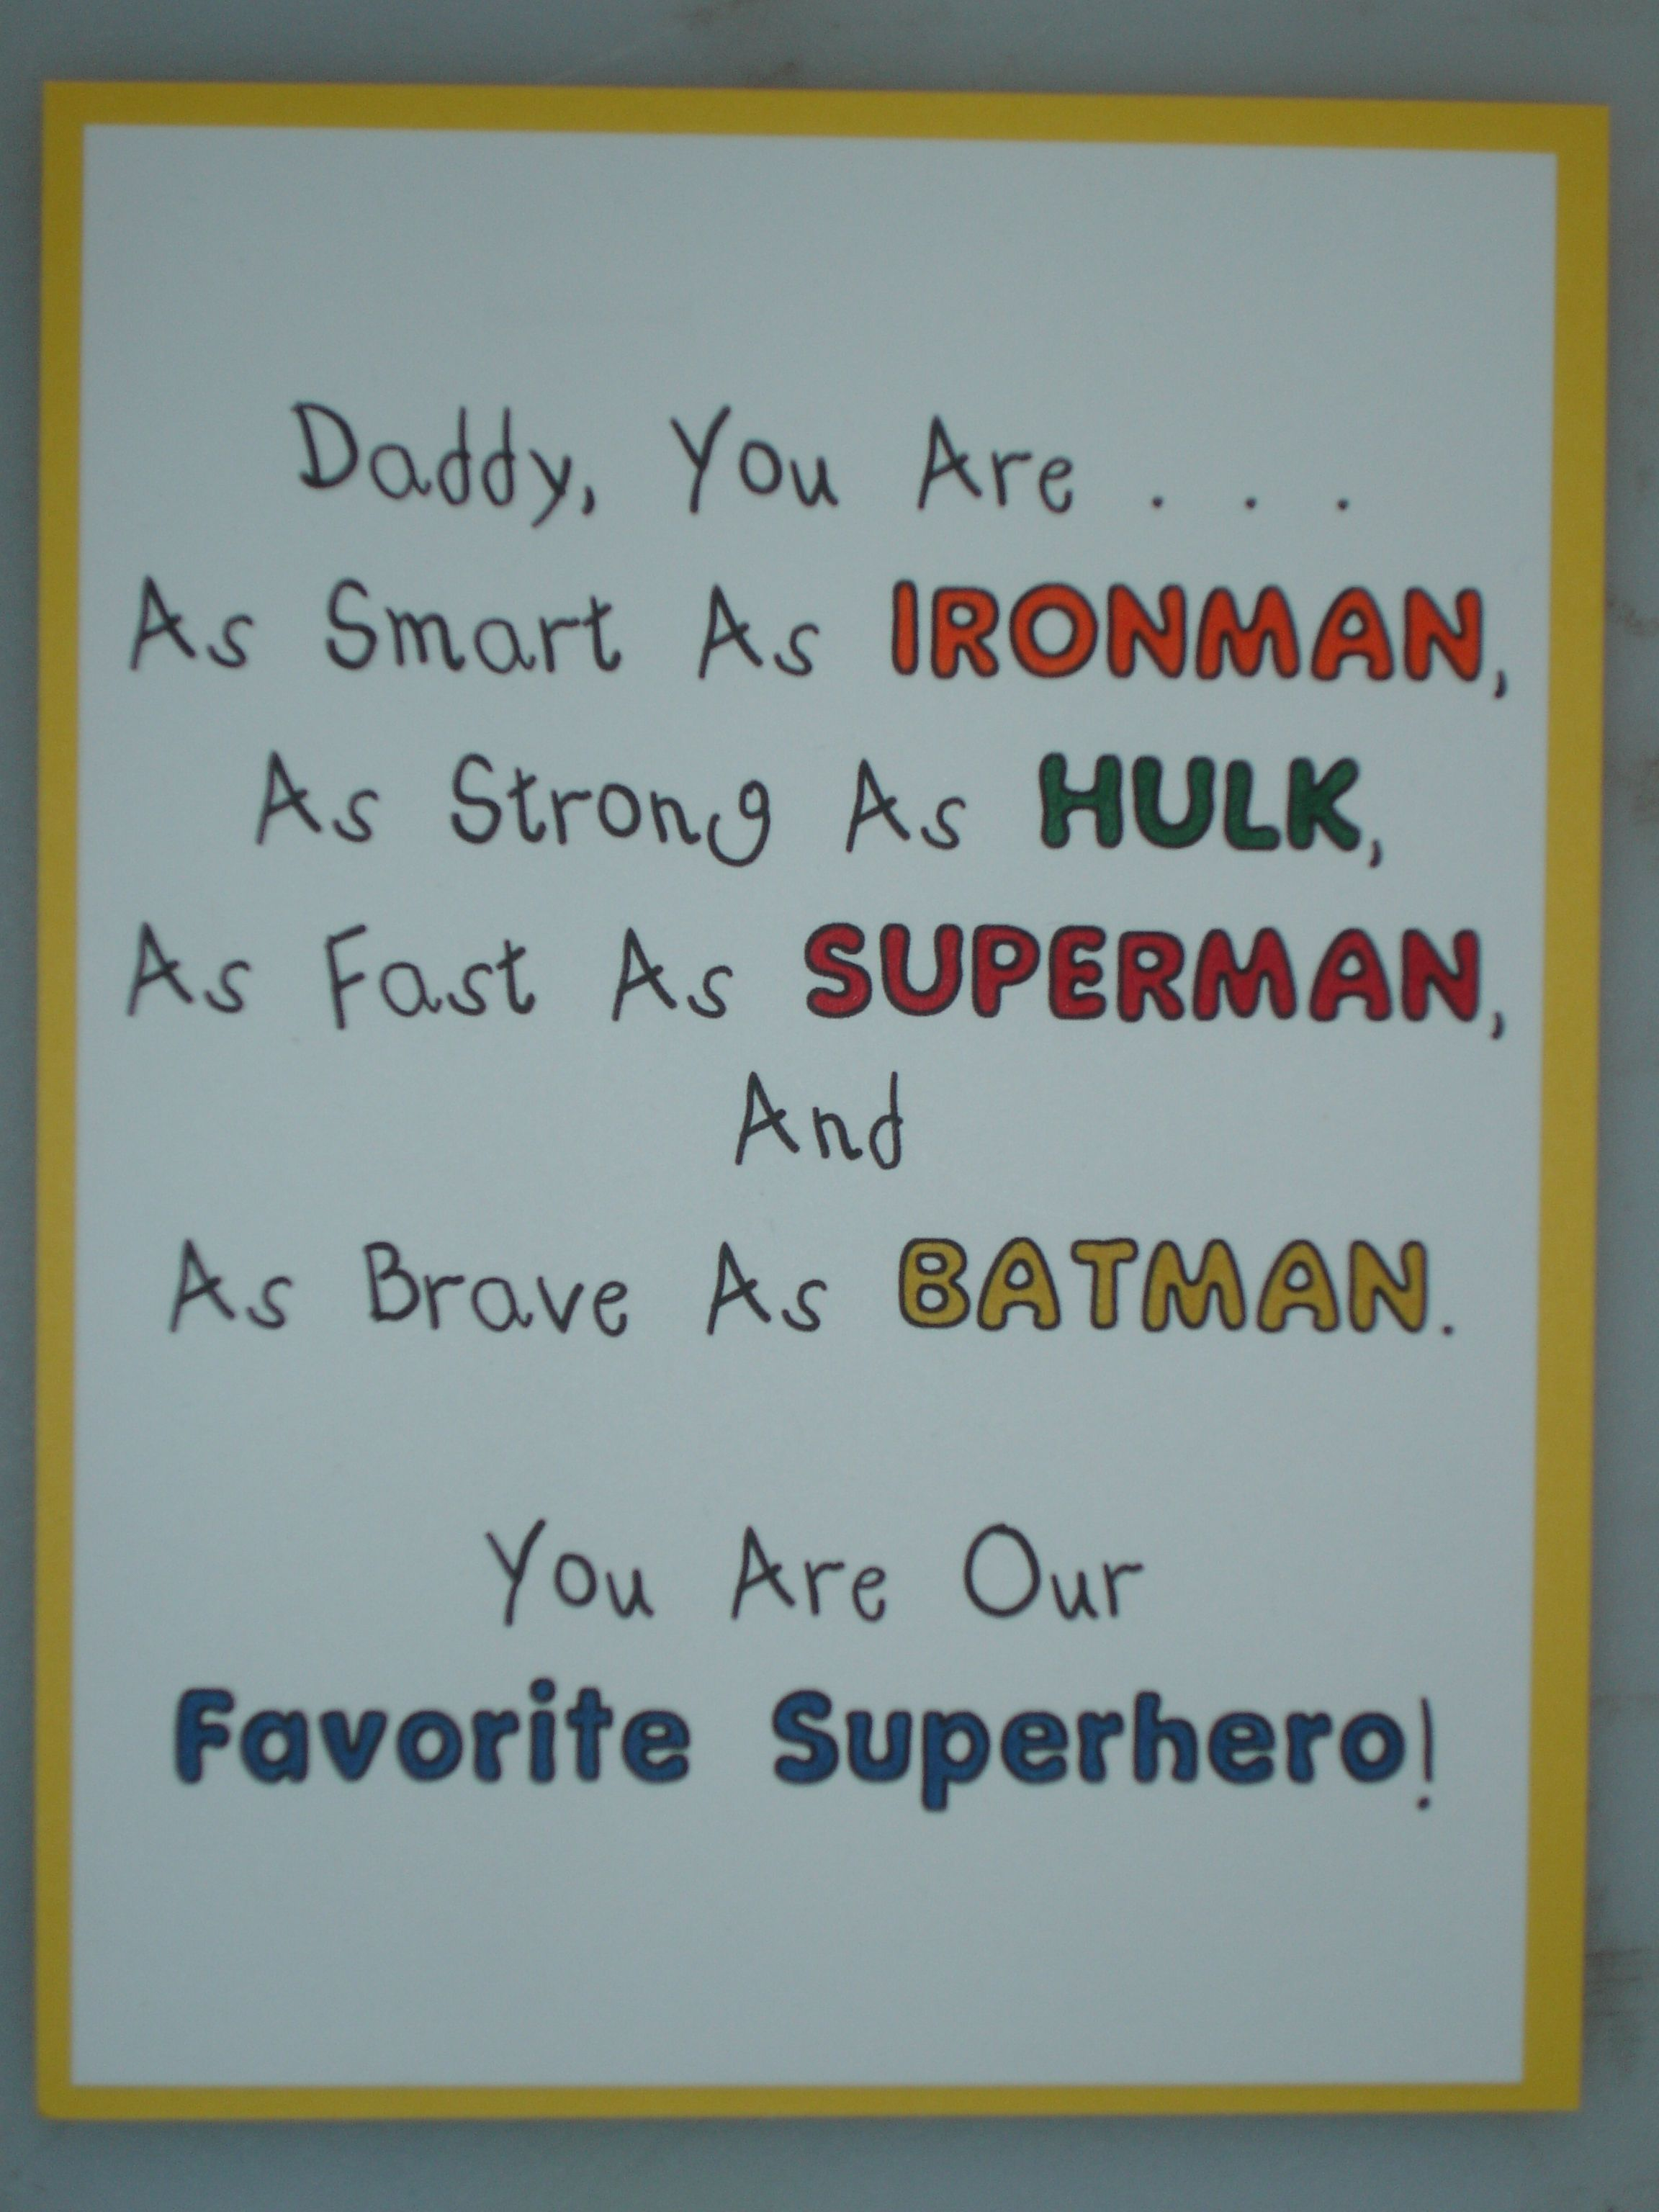 My Brother In Law Loves Marvel Comics So I Went With A Superhero Theme To Make Him A Card From His Kids Fathers Day Cards Superhero Theme Daddy